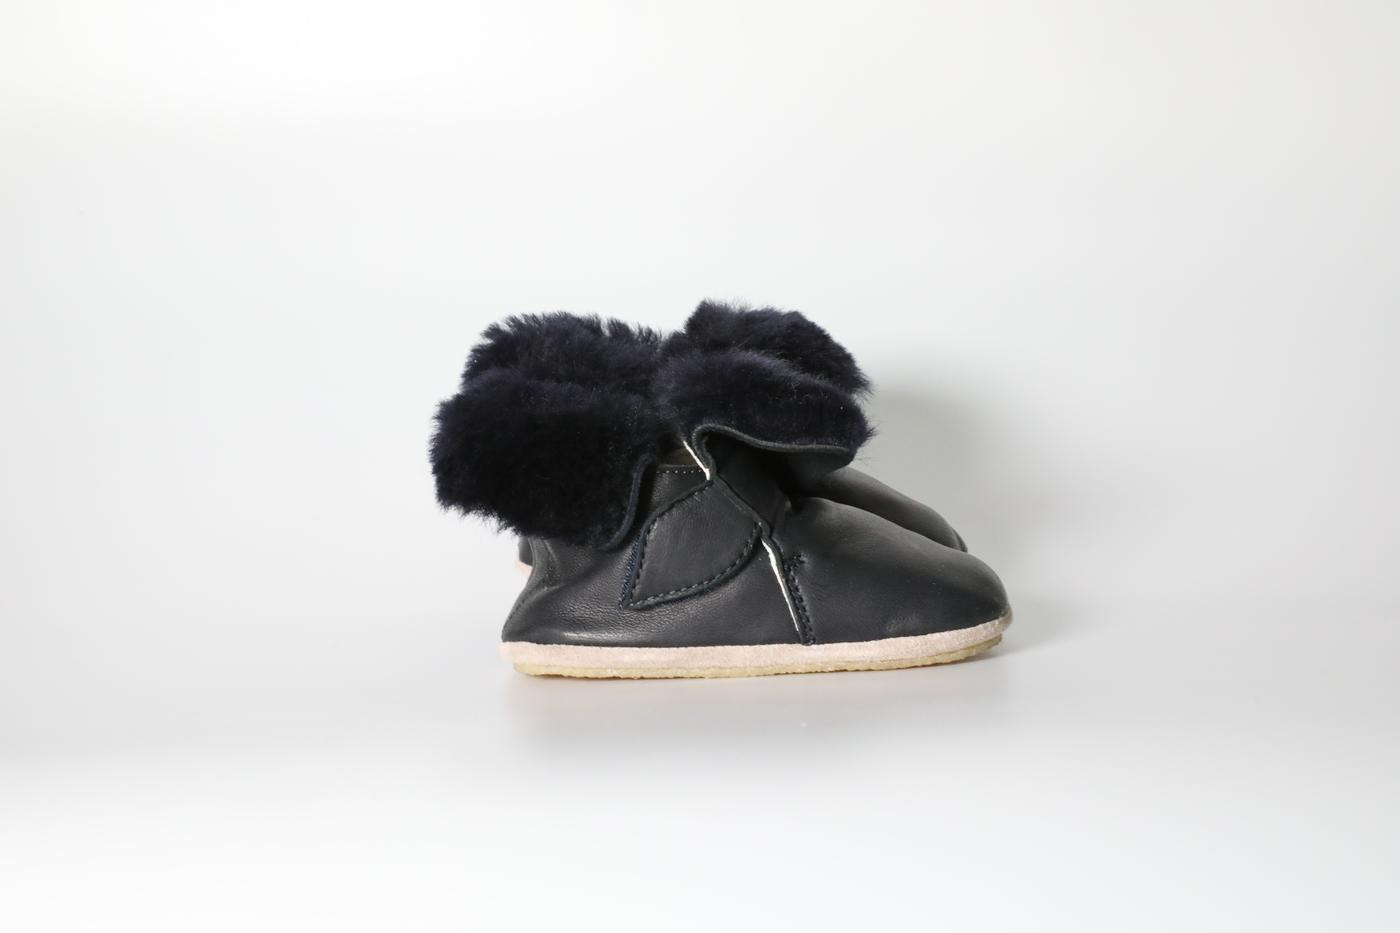 Fur and leather infant boot